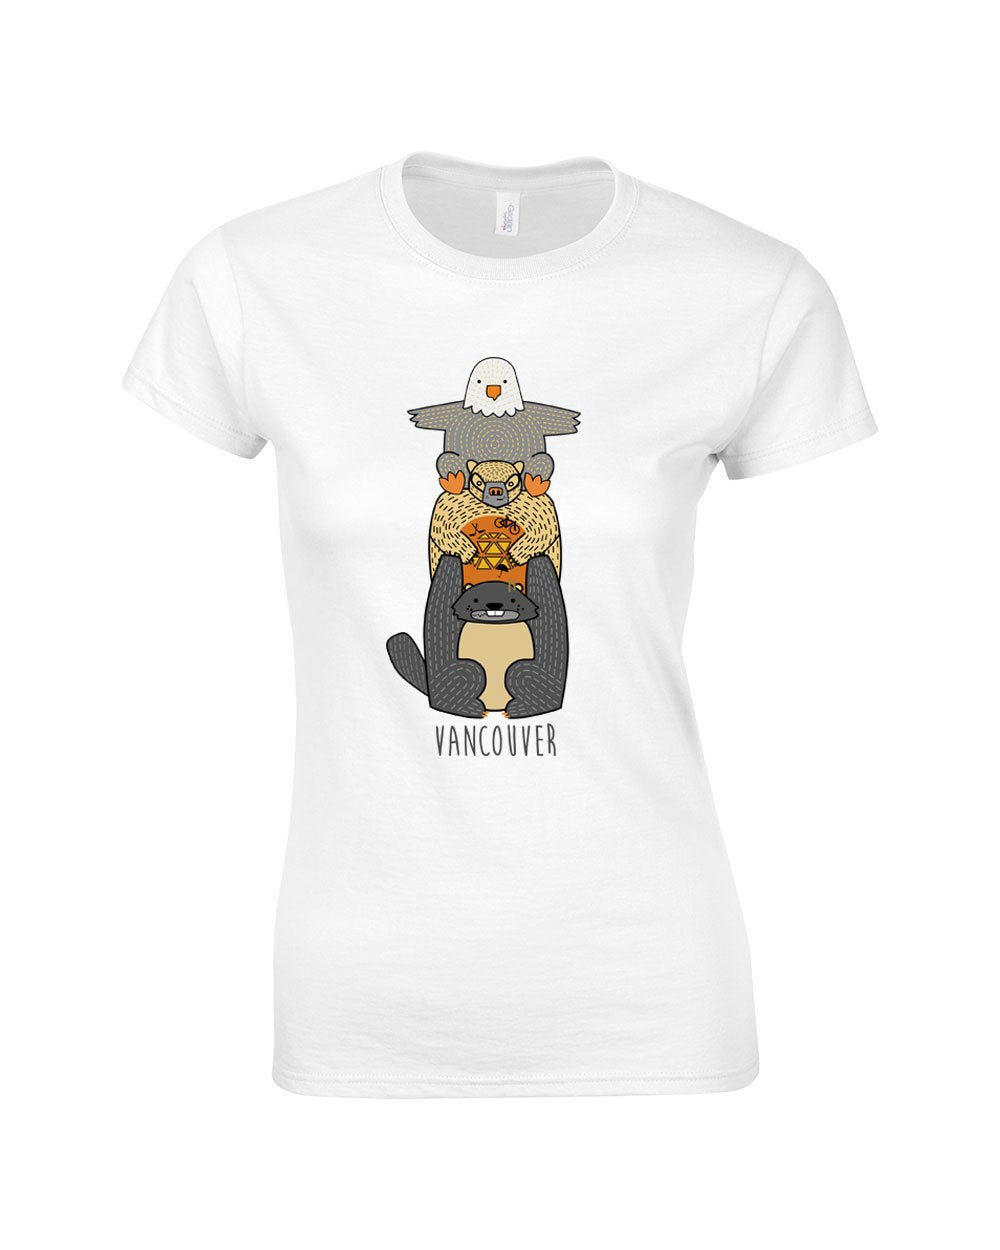 Cute Critter Vancouver Totem Make Original White T-Shirt Womens